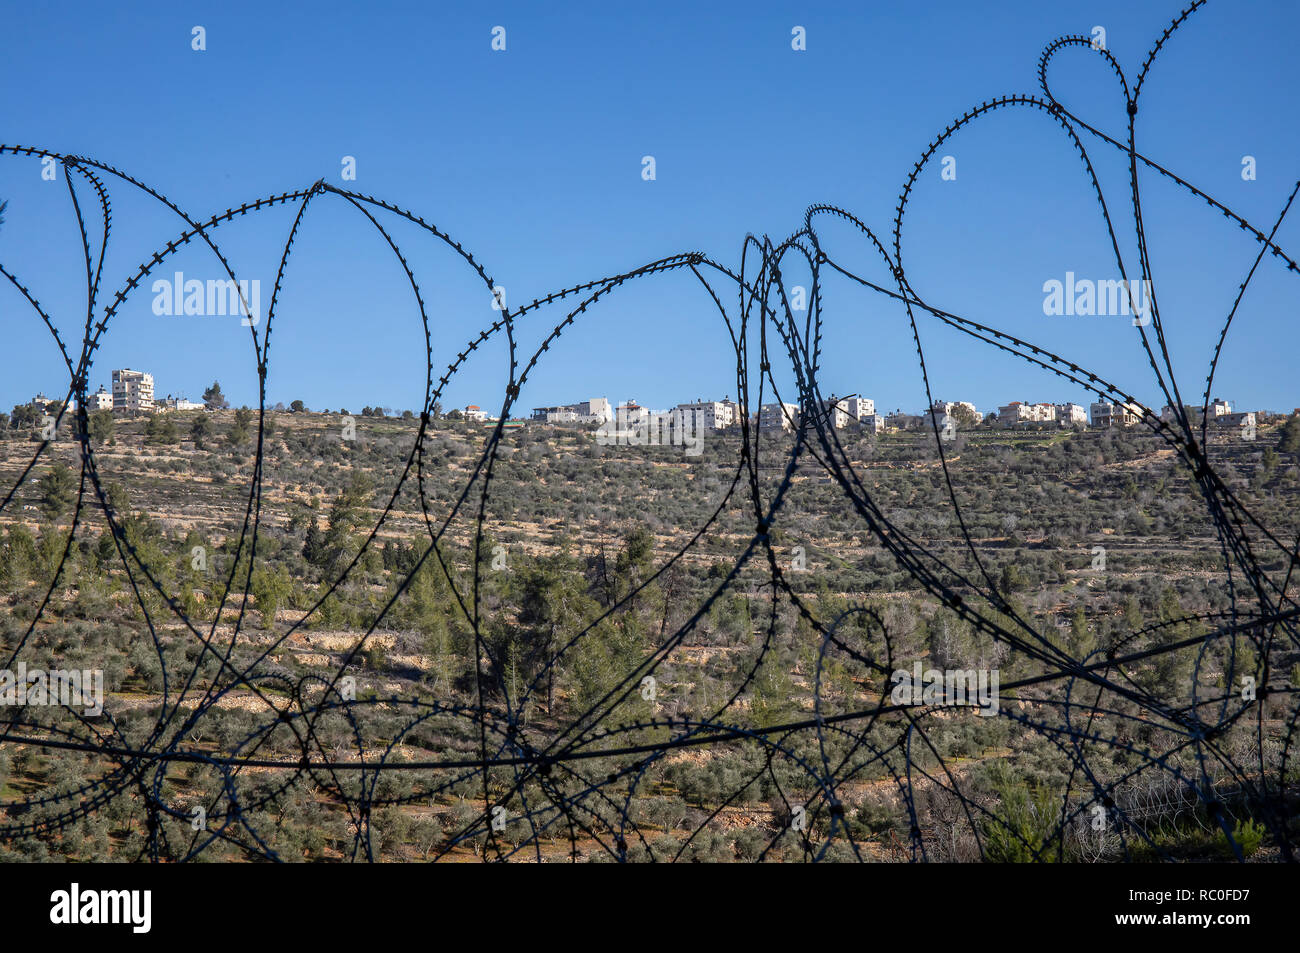 The palestinian village Beit Surik photographed through a barbed wire fences, separating it from israeli territories - Stock Image